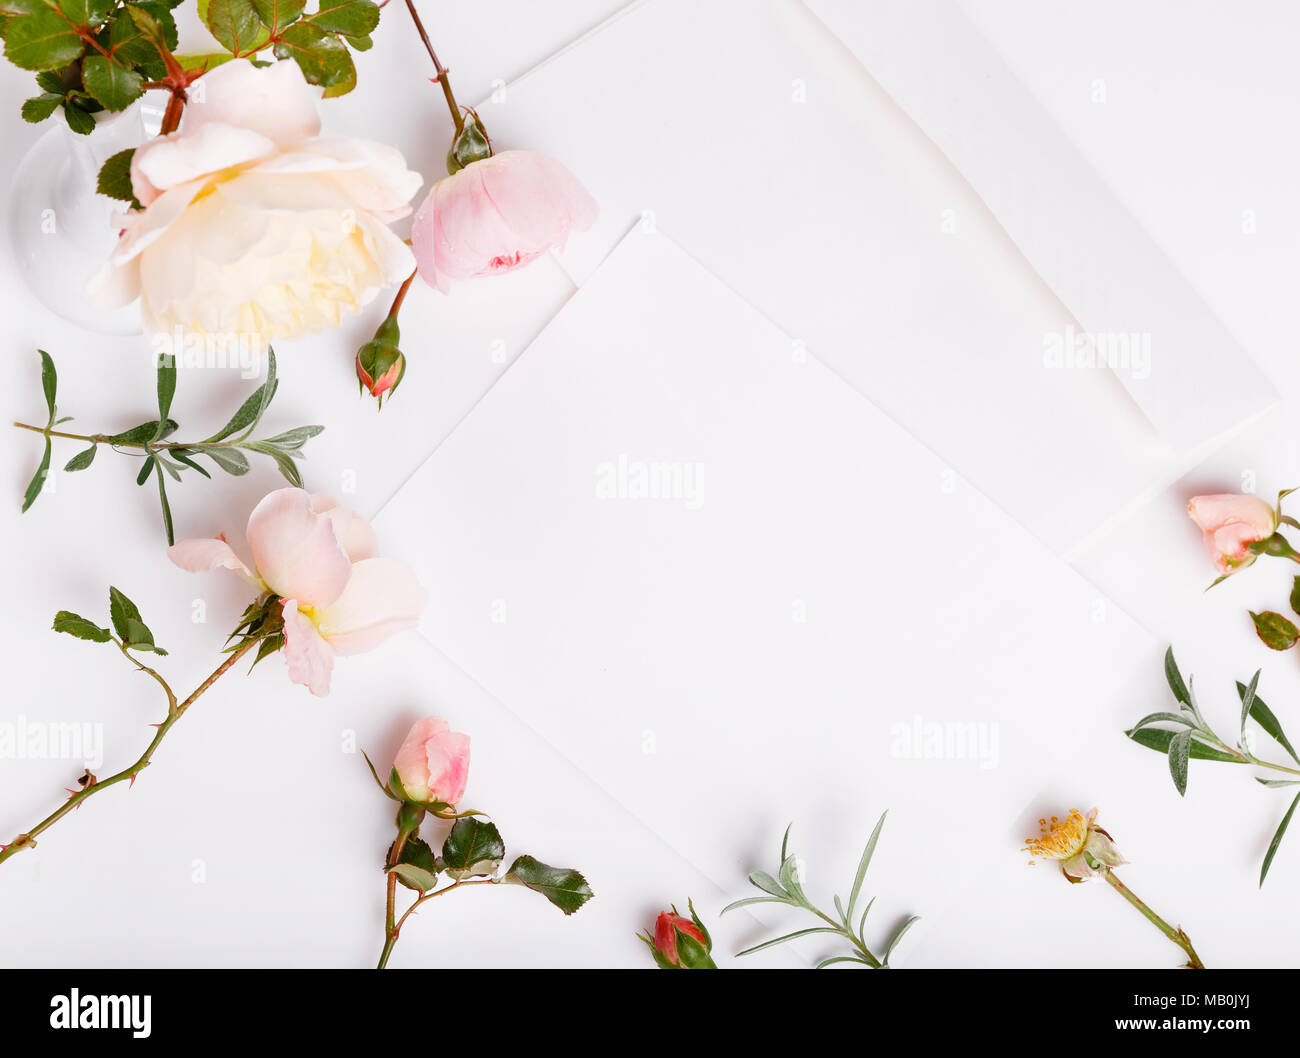 Letter White Envelope On White Background With Pink English